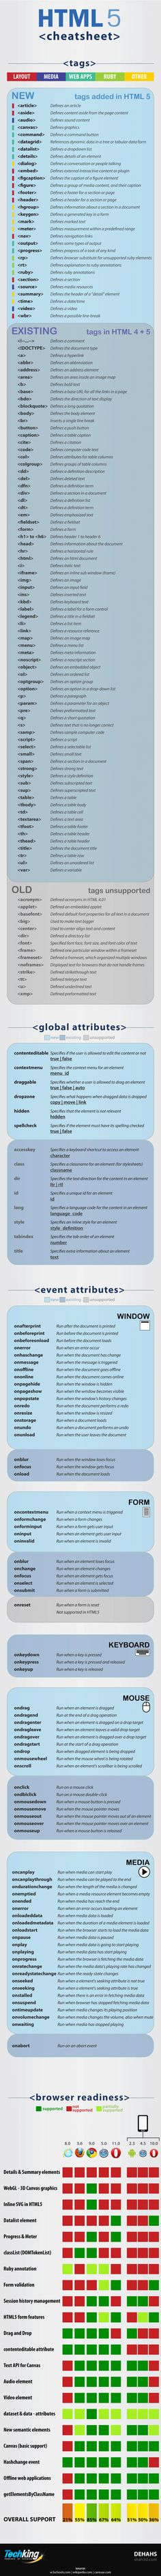 HTML quick reference sheet.